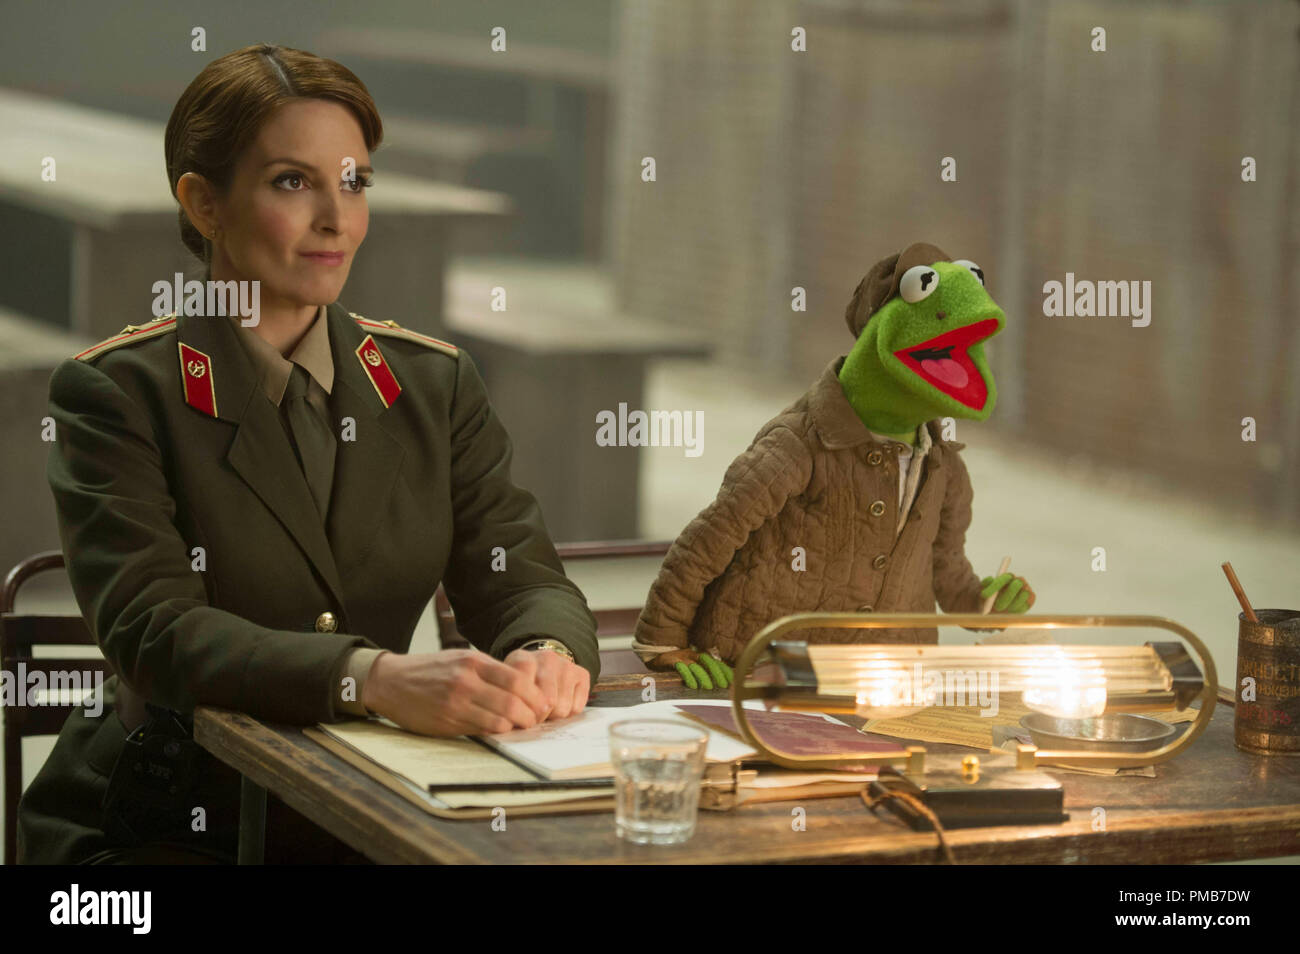 Kermit The Frog Stock Photos & Kermit The Frog Stock